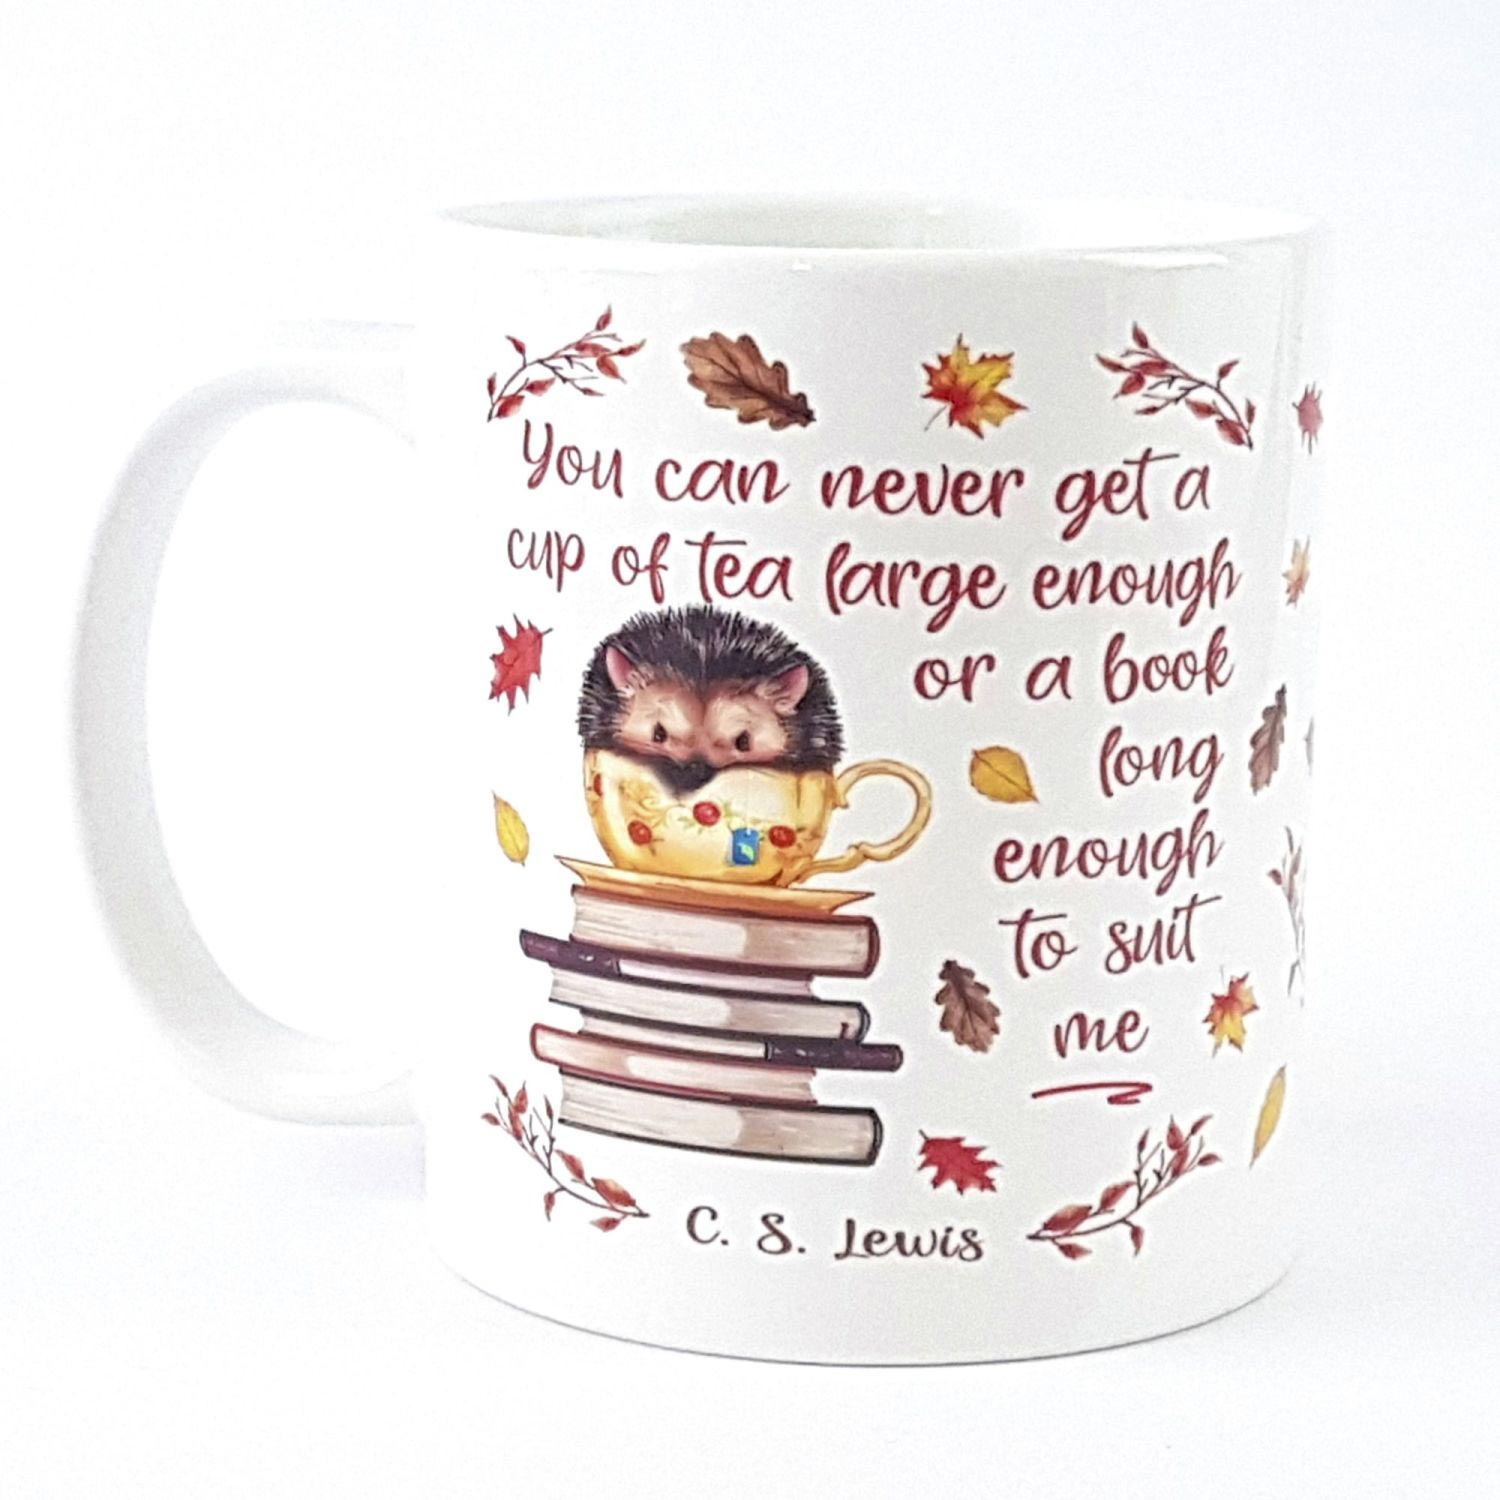 Image result for can't get a cup of tea big enough